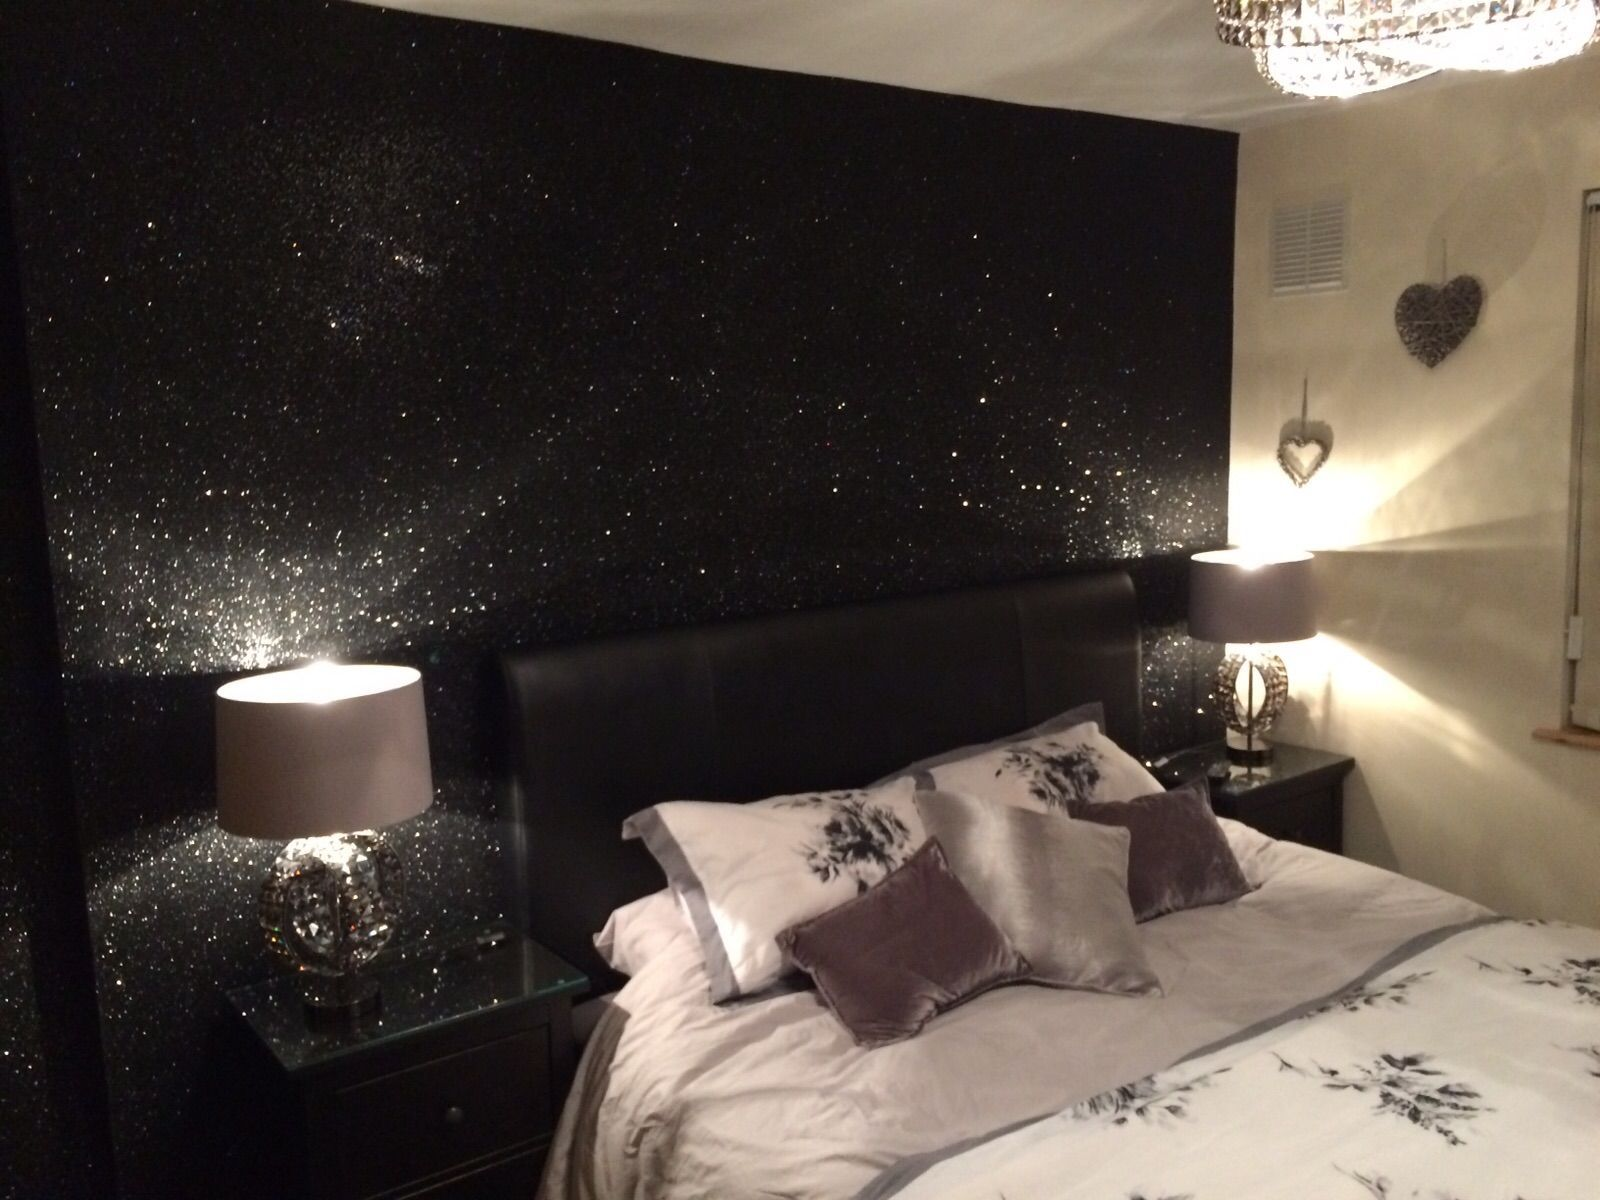 Glitter Sparkle Shades Of Silver Black Authentic Premium Quality Glitter Wallcovering 3 5 Days Glitter Wallpaper Bedroom Glitter Bedroom Glitter Room